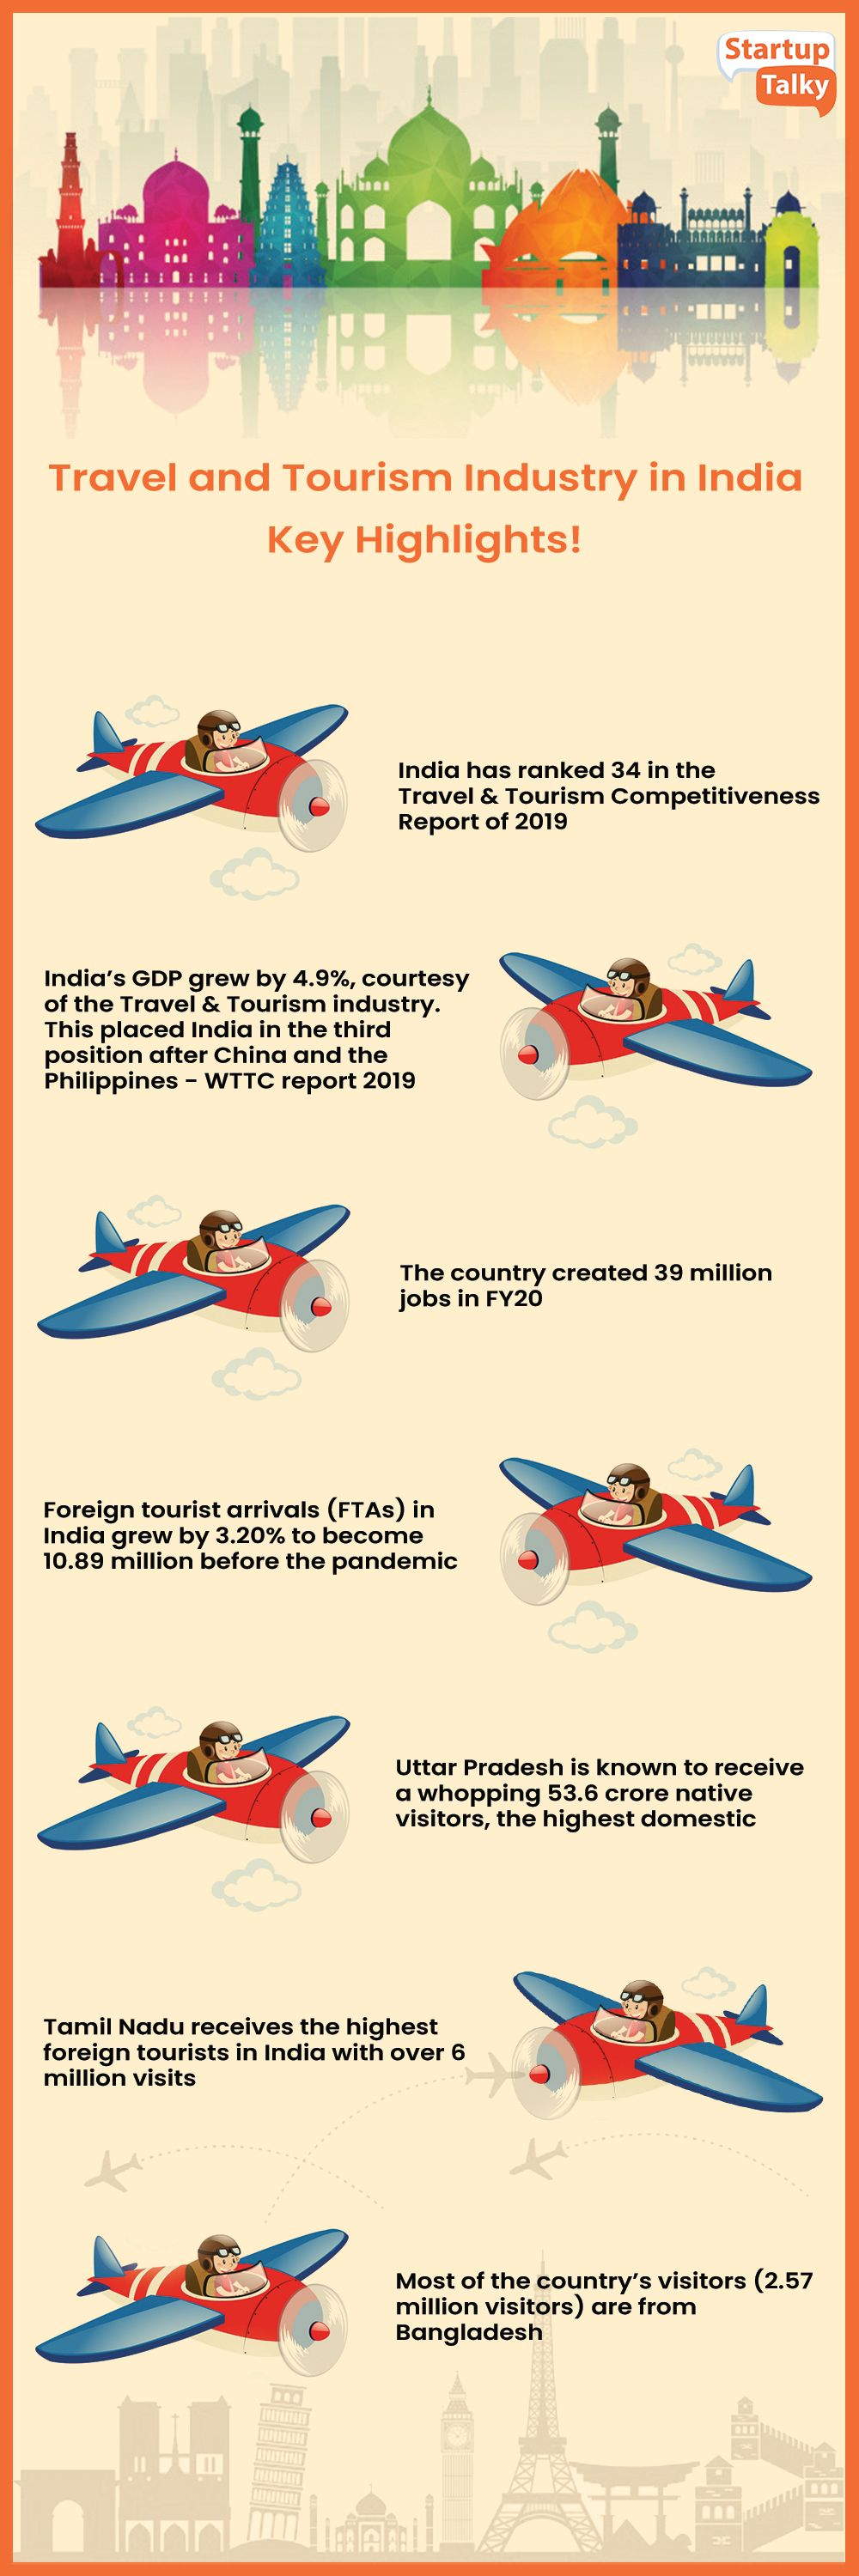 Travel and Tourism Trends